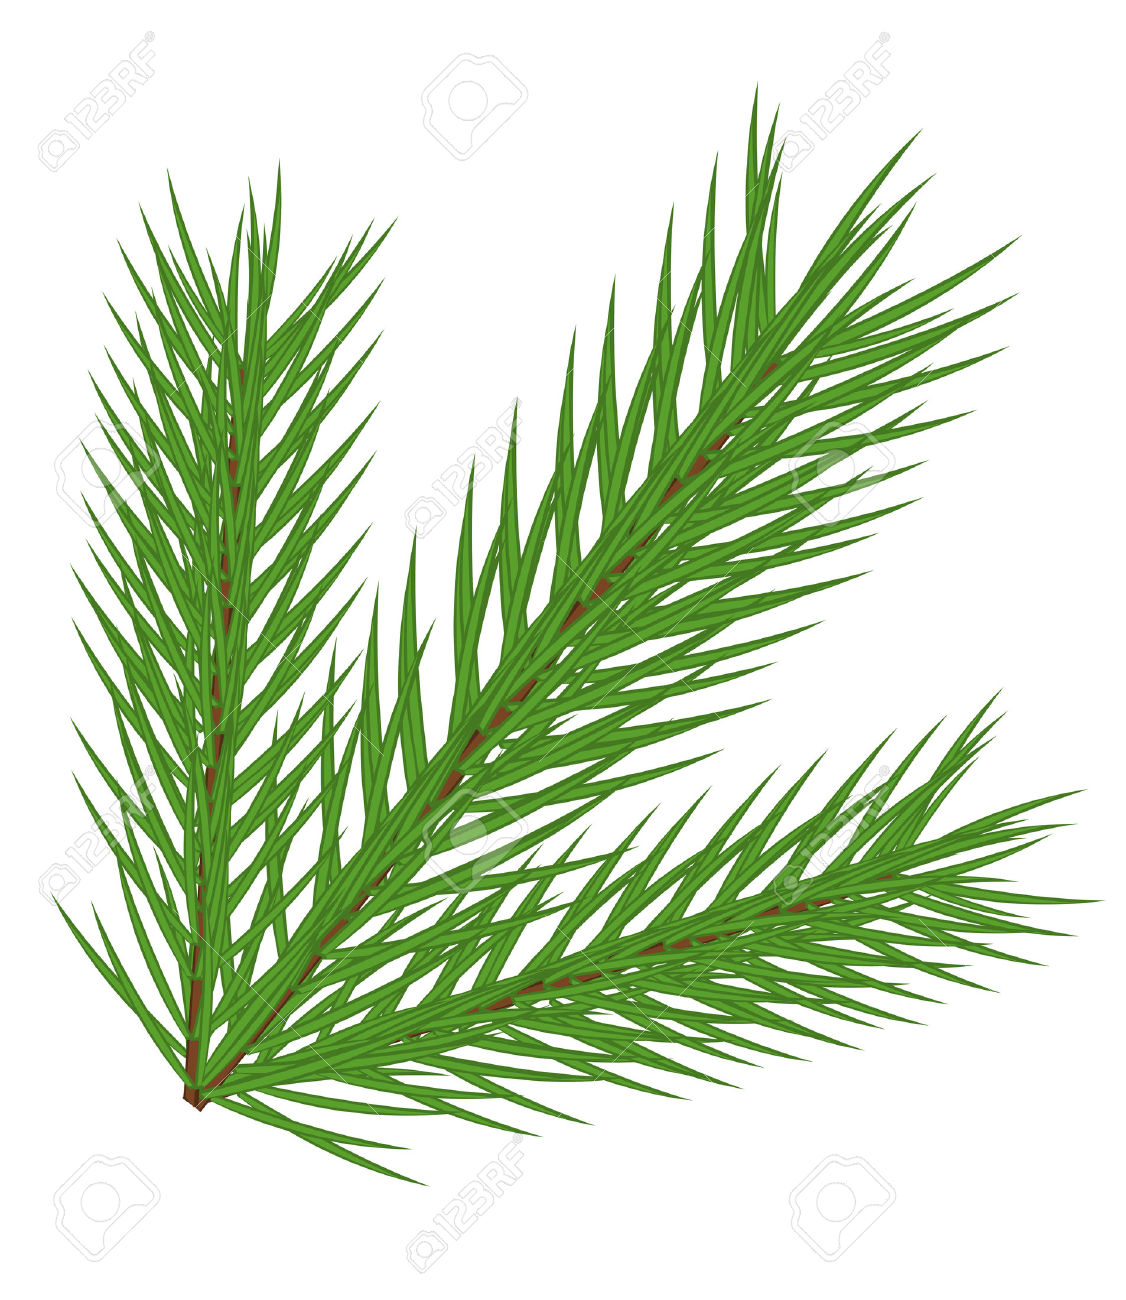 Fir Branch Isolated Royalty Free Cliparts, Vectors, And Stock.